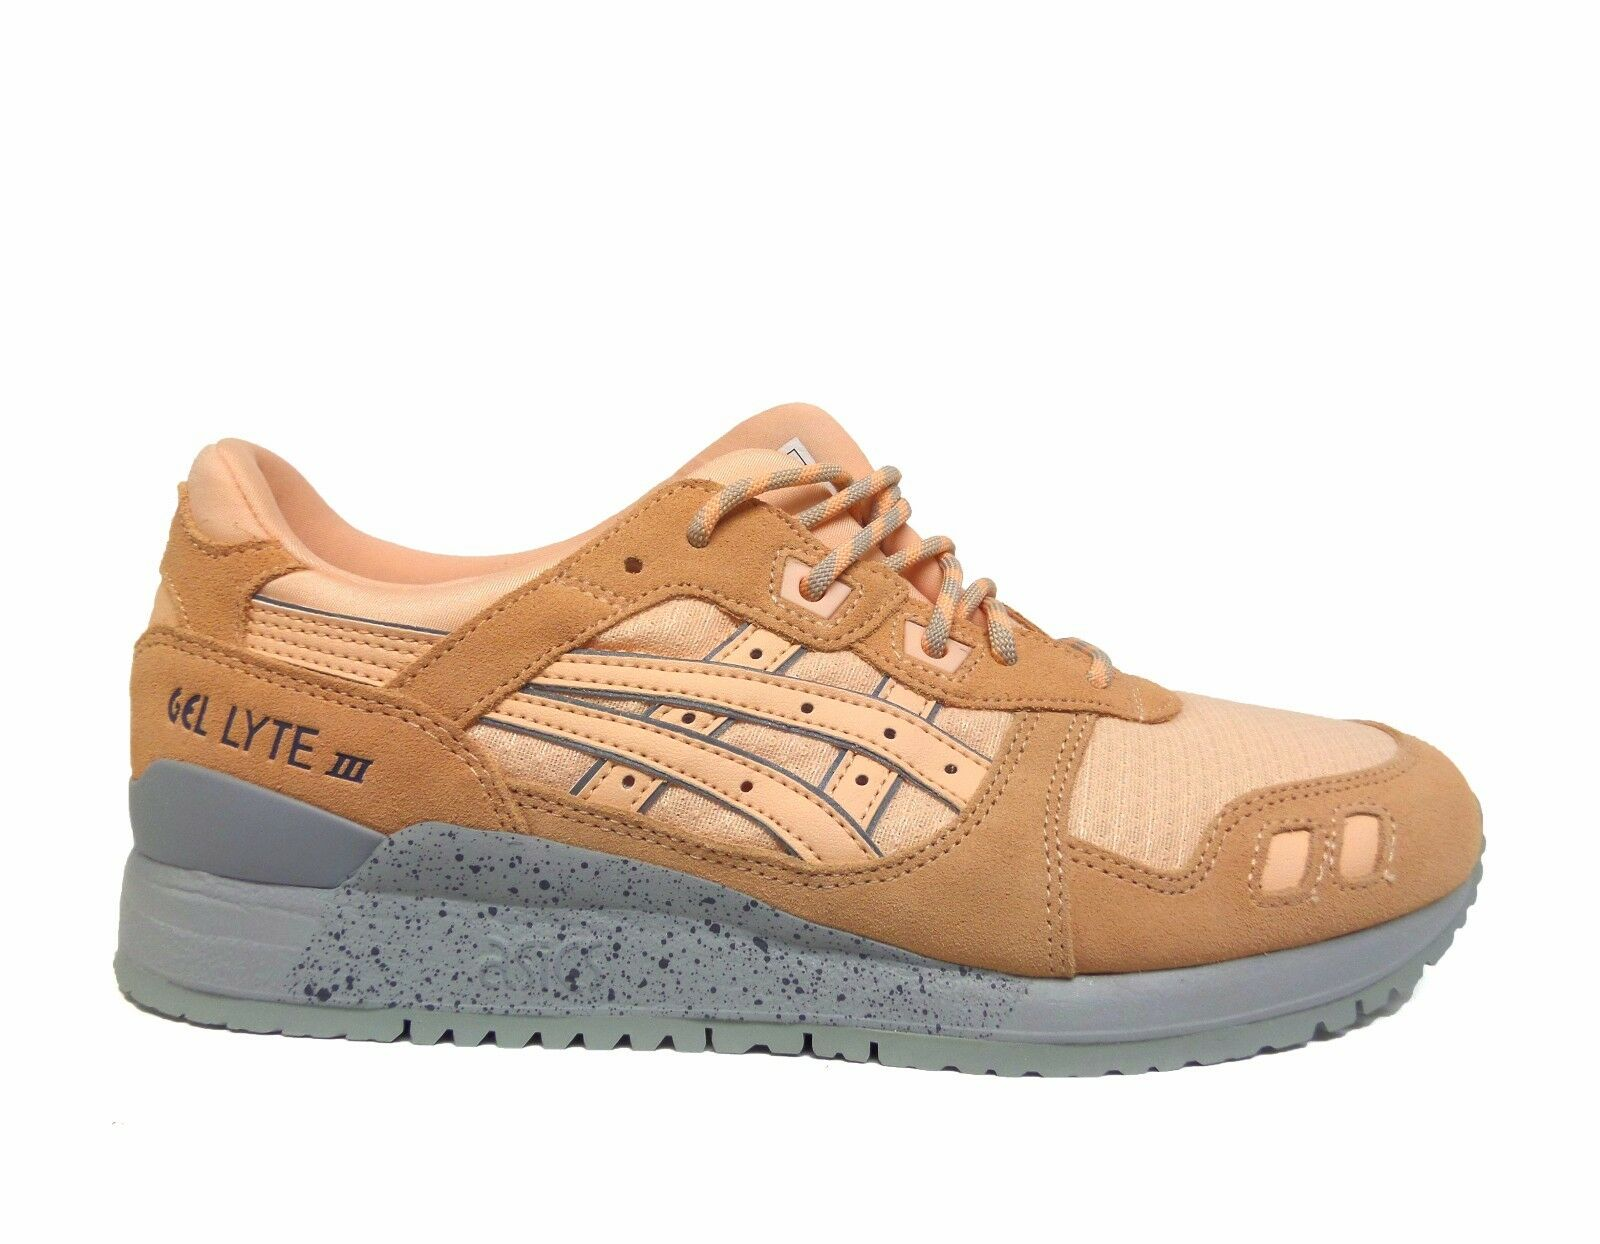 ASICS hommes GEL LYTE III Chaussures Bleached Apricot H7L4L-1717 b